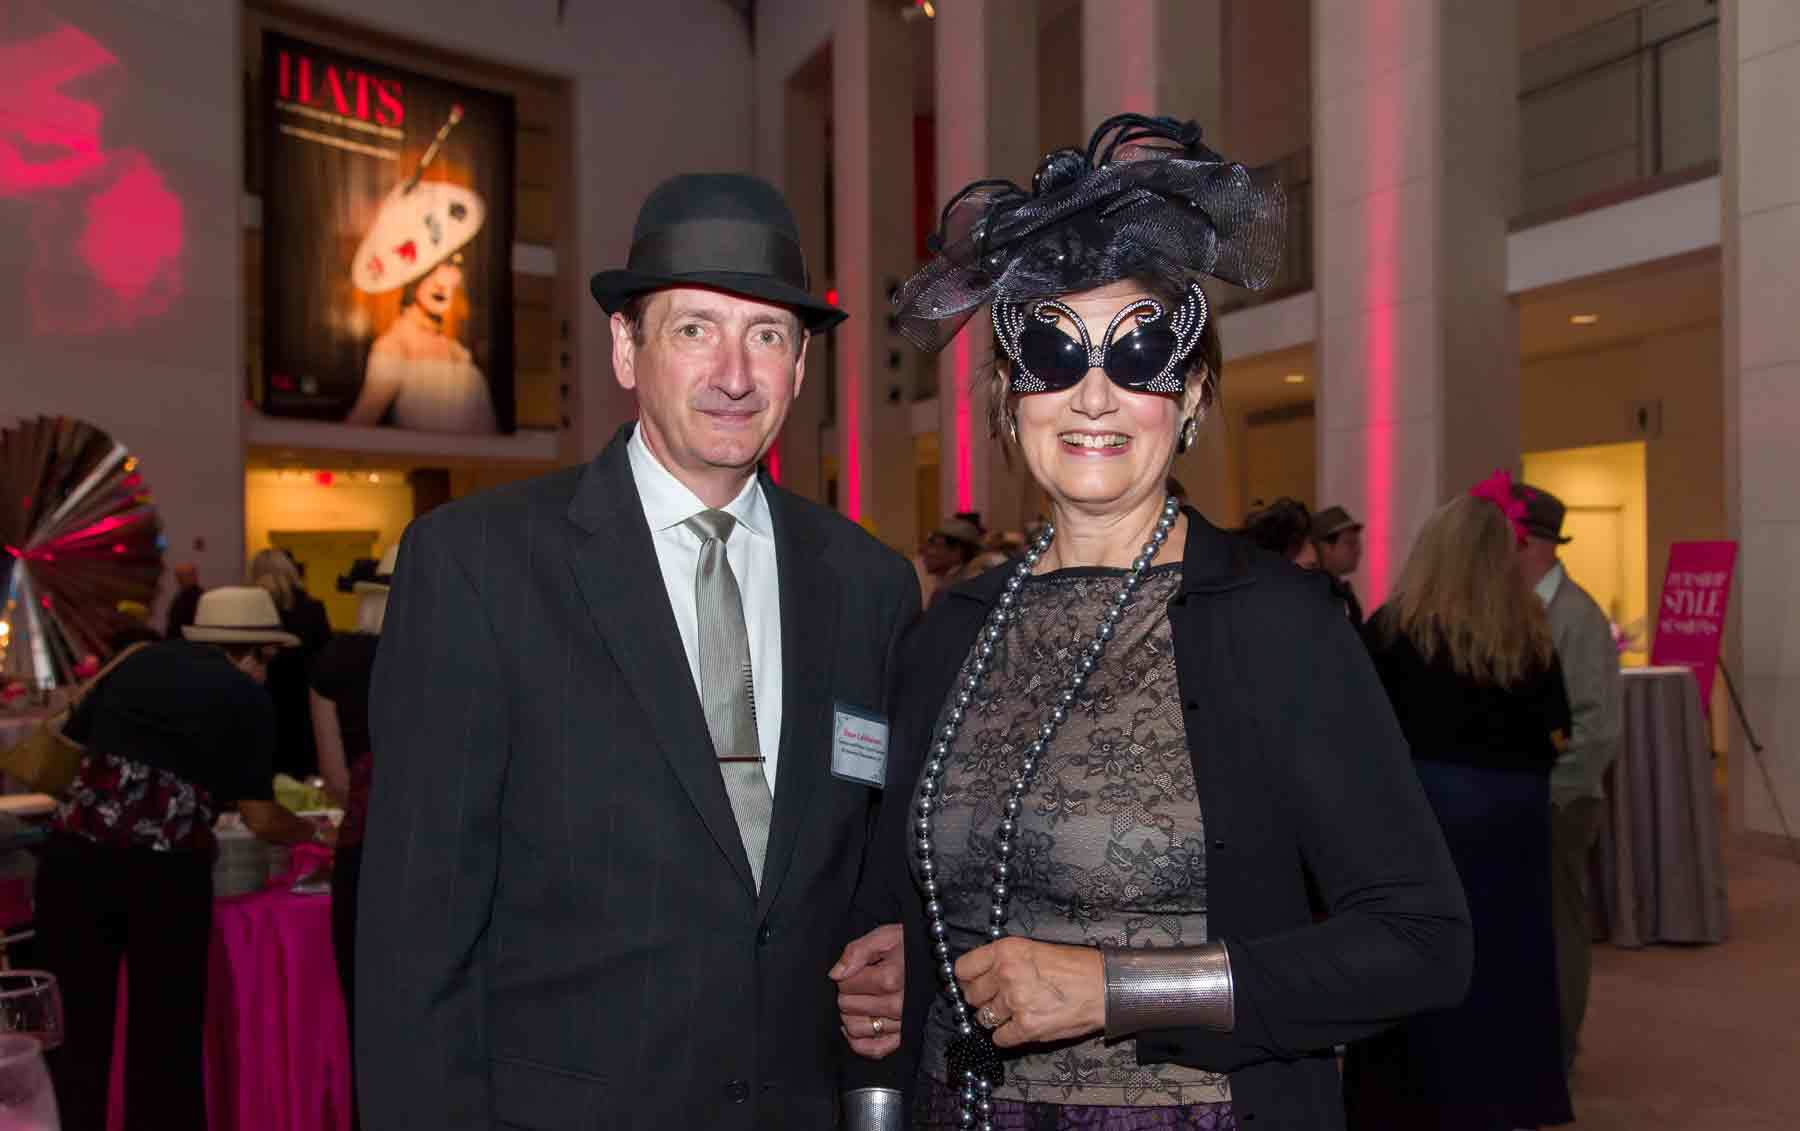 Dean and Betsy Lahikainen at the opening of the exhibition Hats: An Anthology by Stephen Jones.